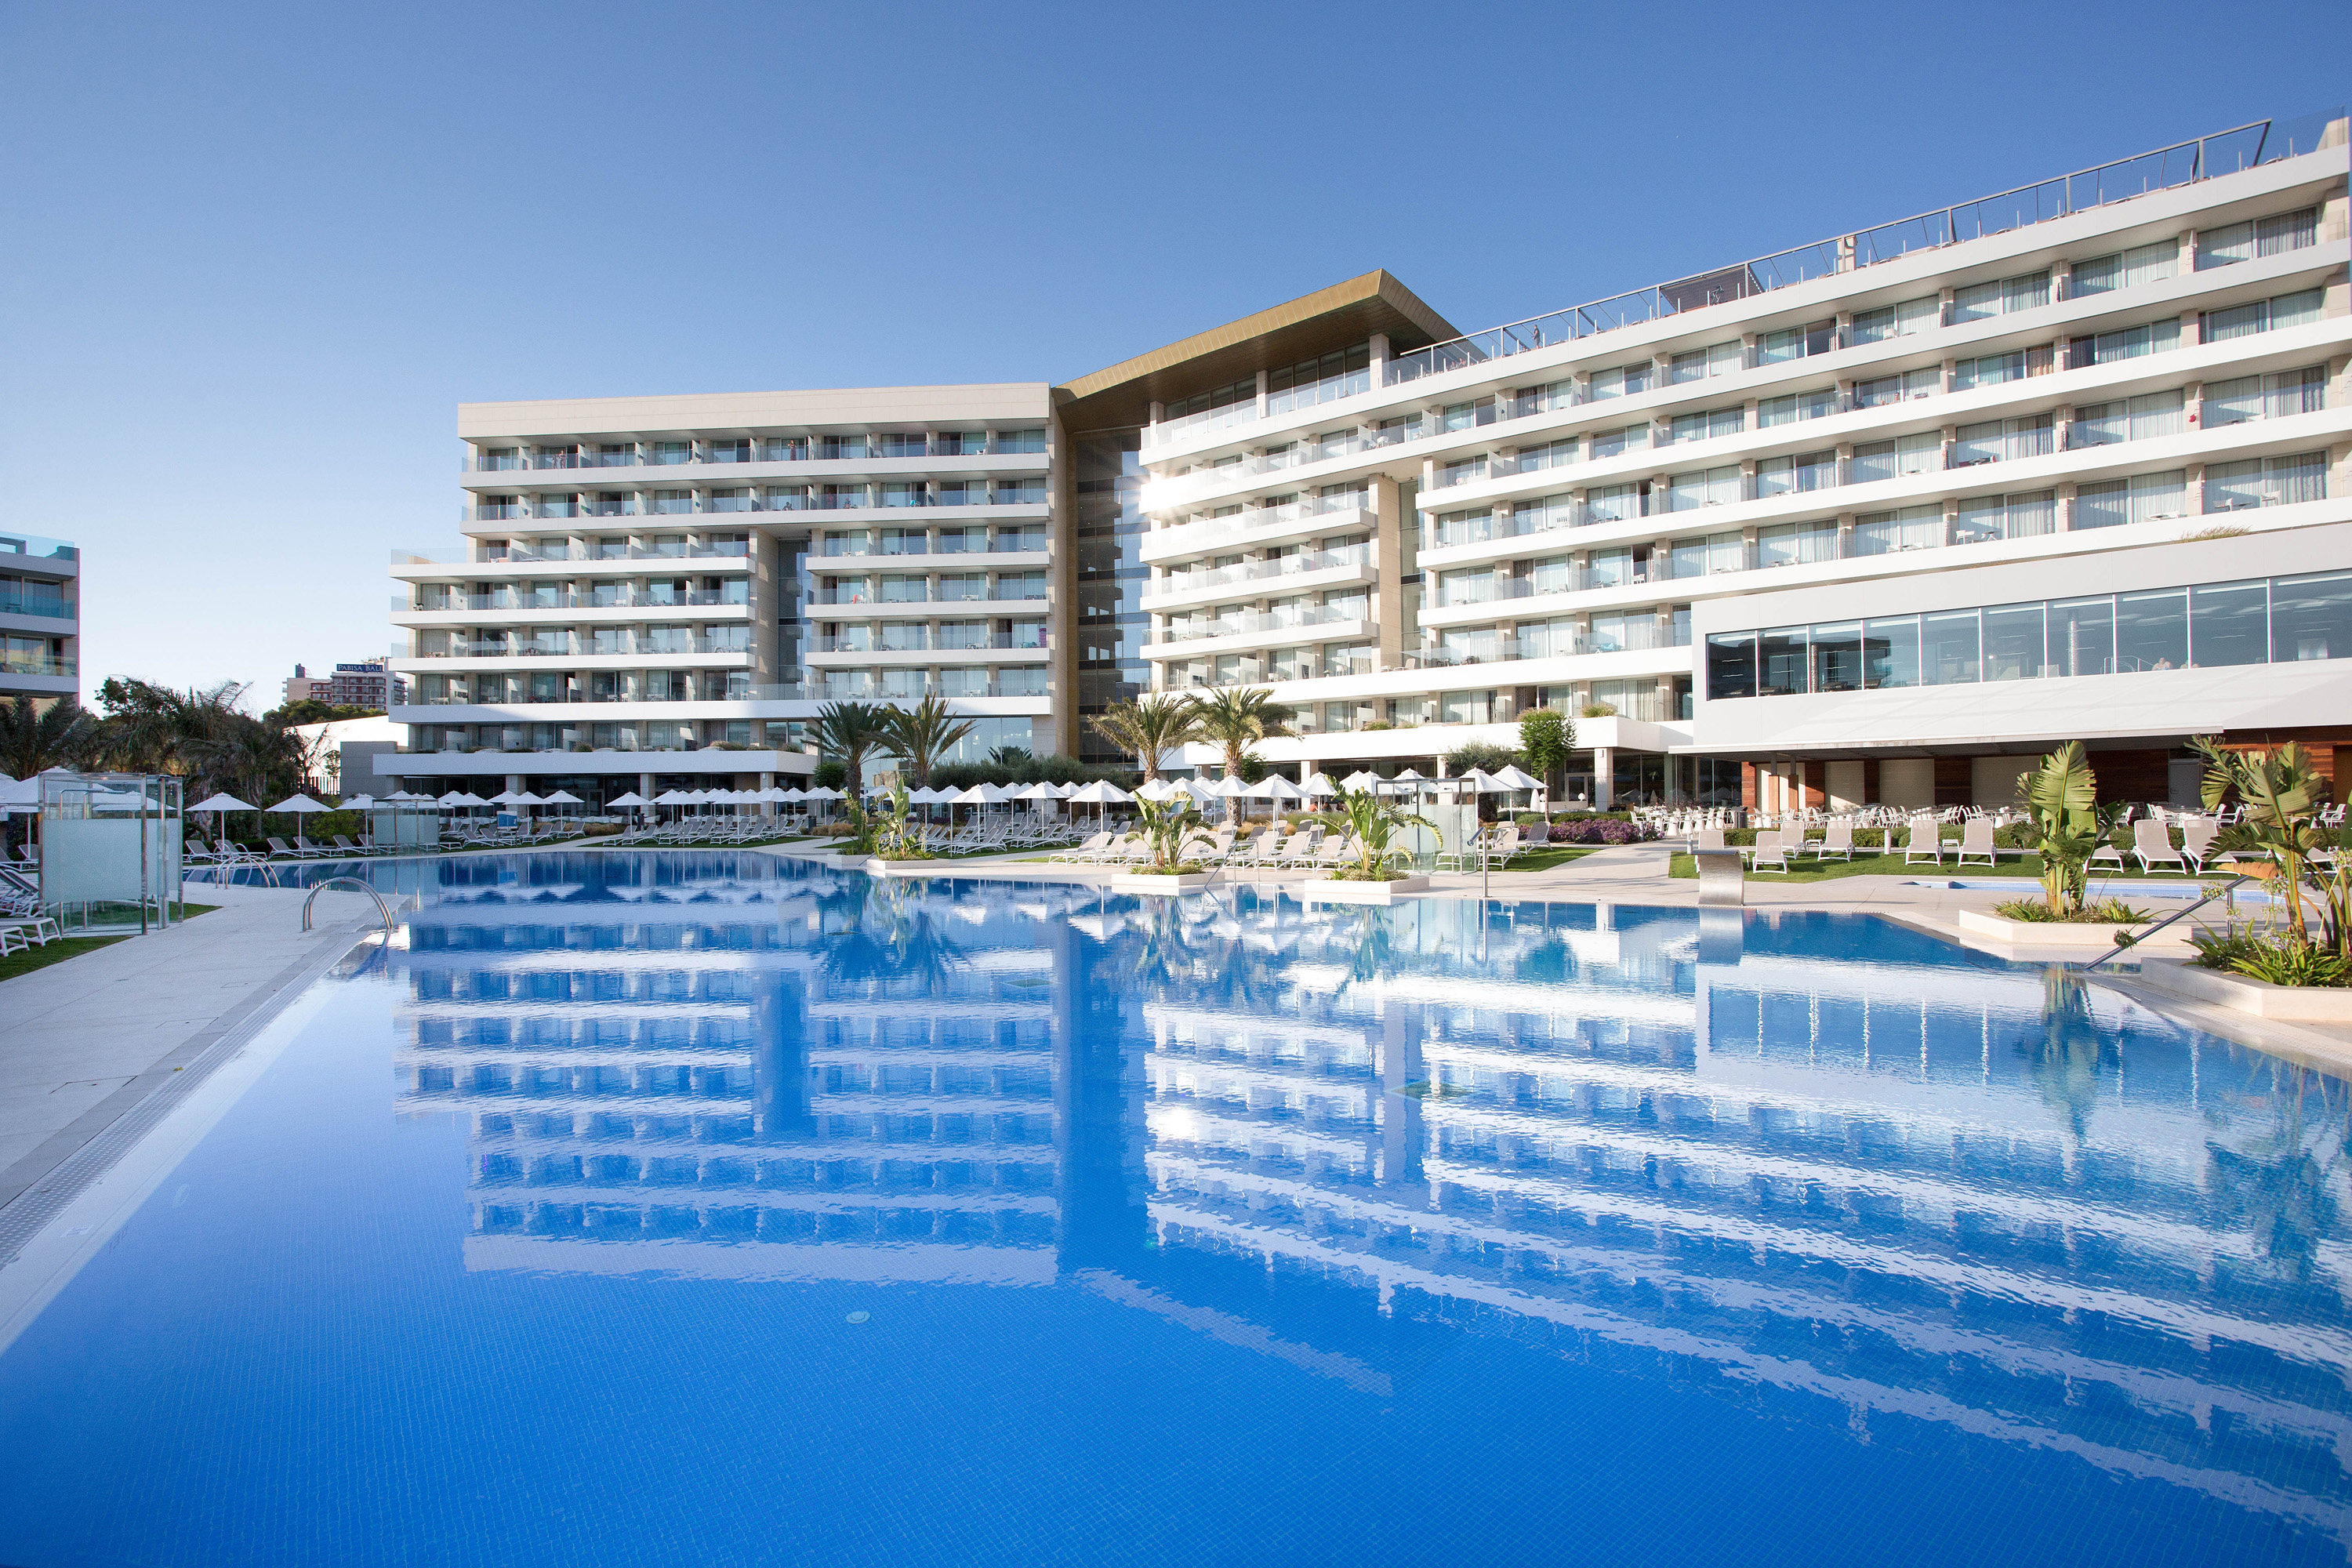 Hipotels Playa de Palma Palace pool and building 1